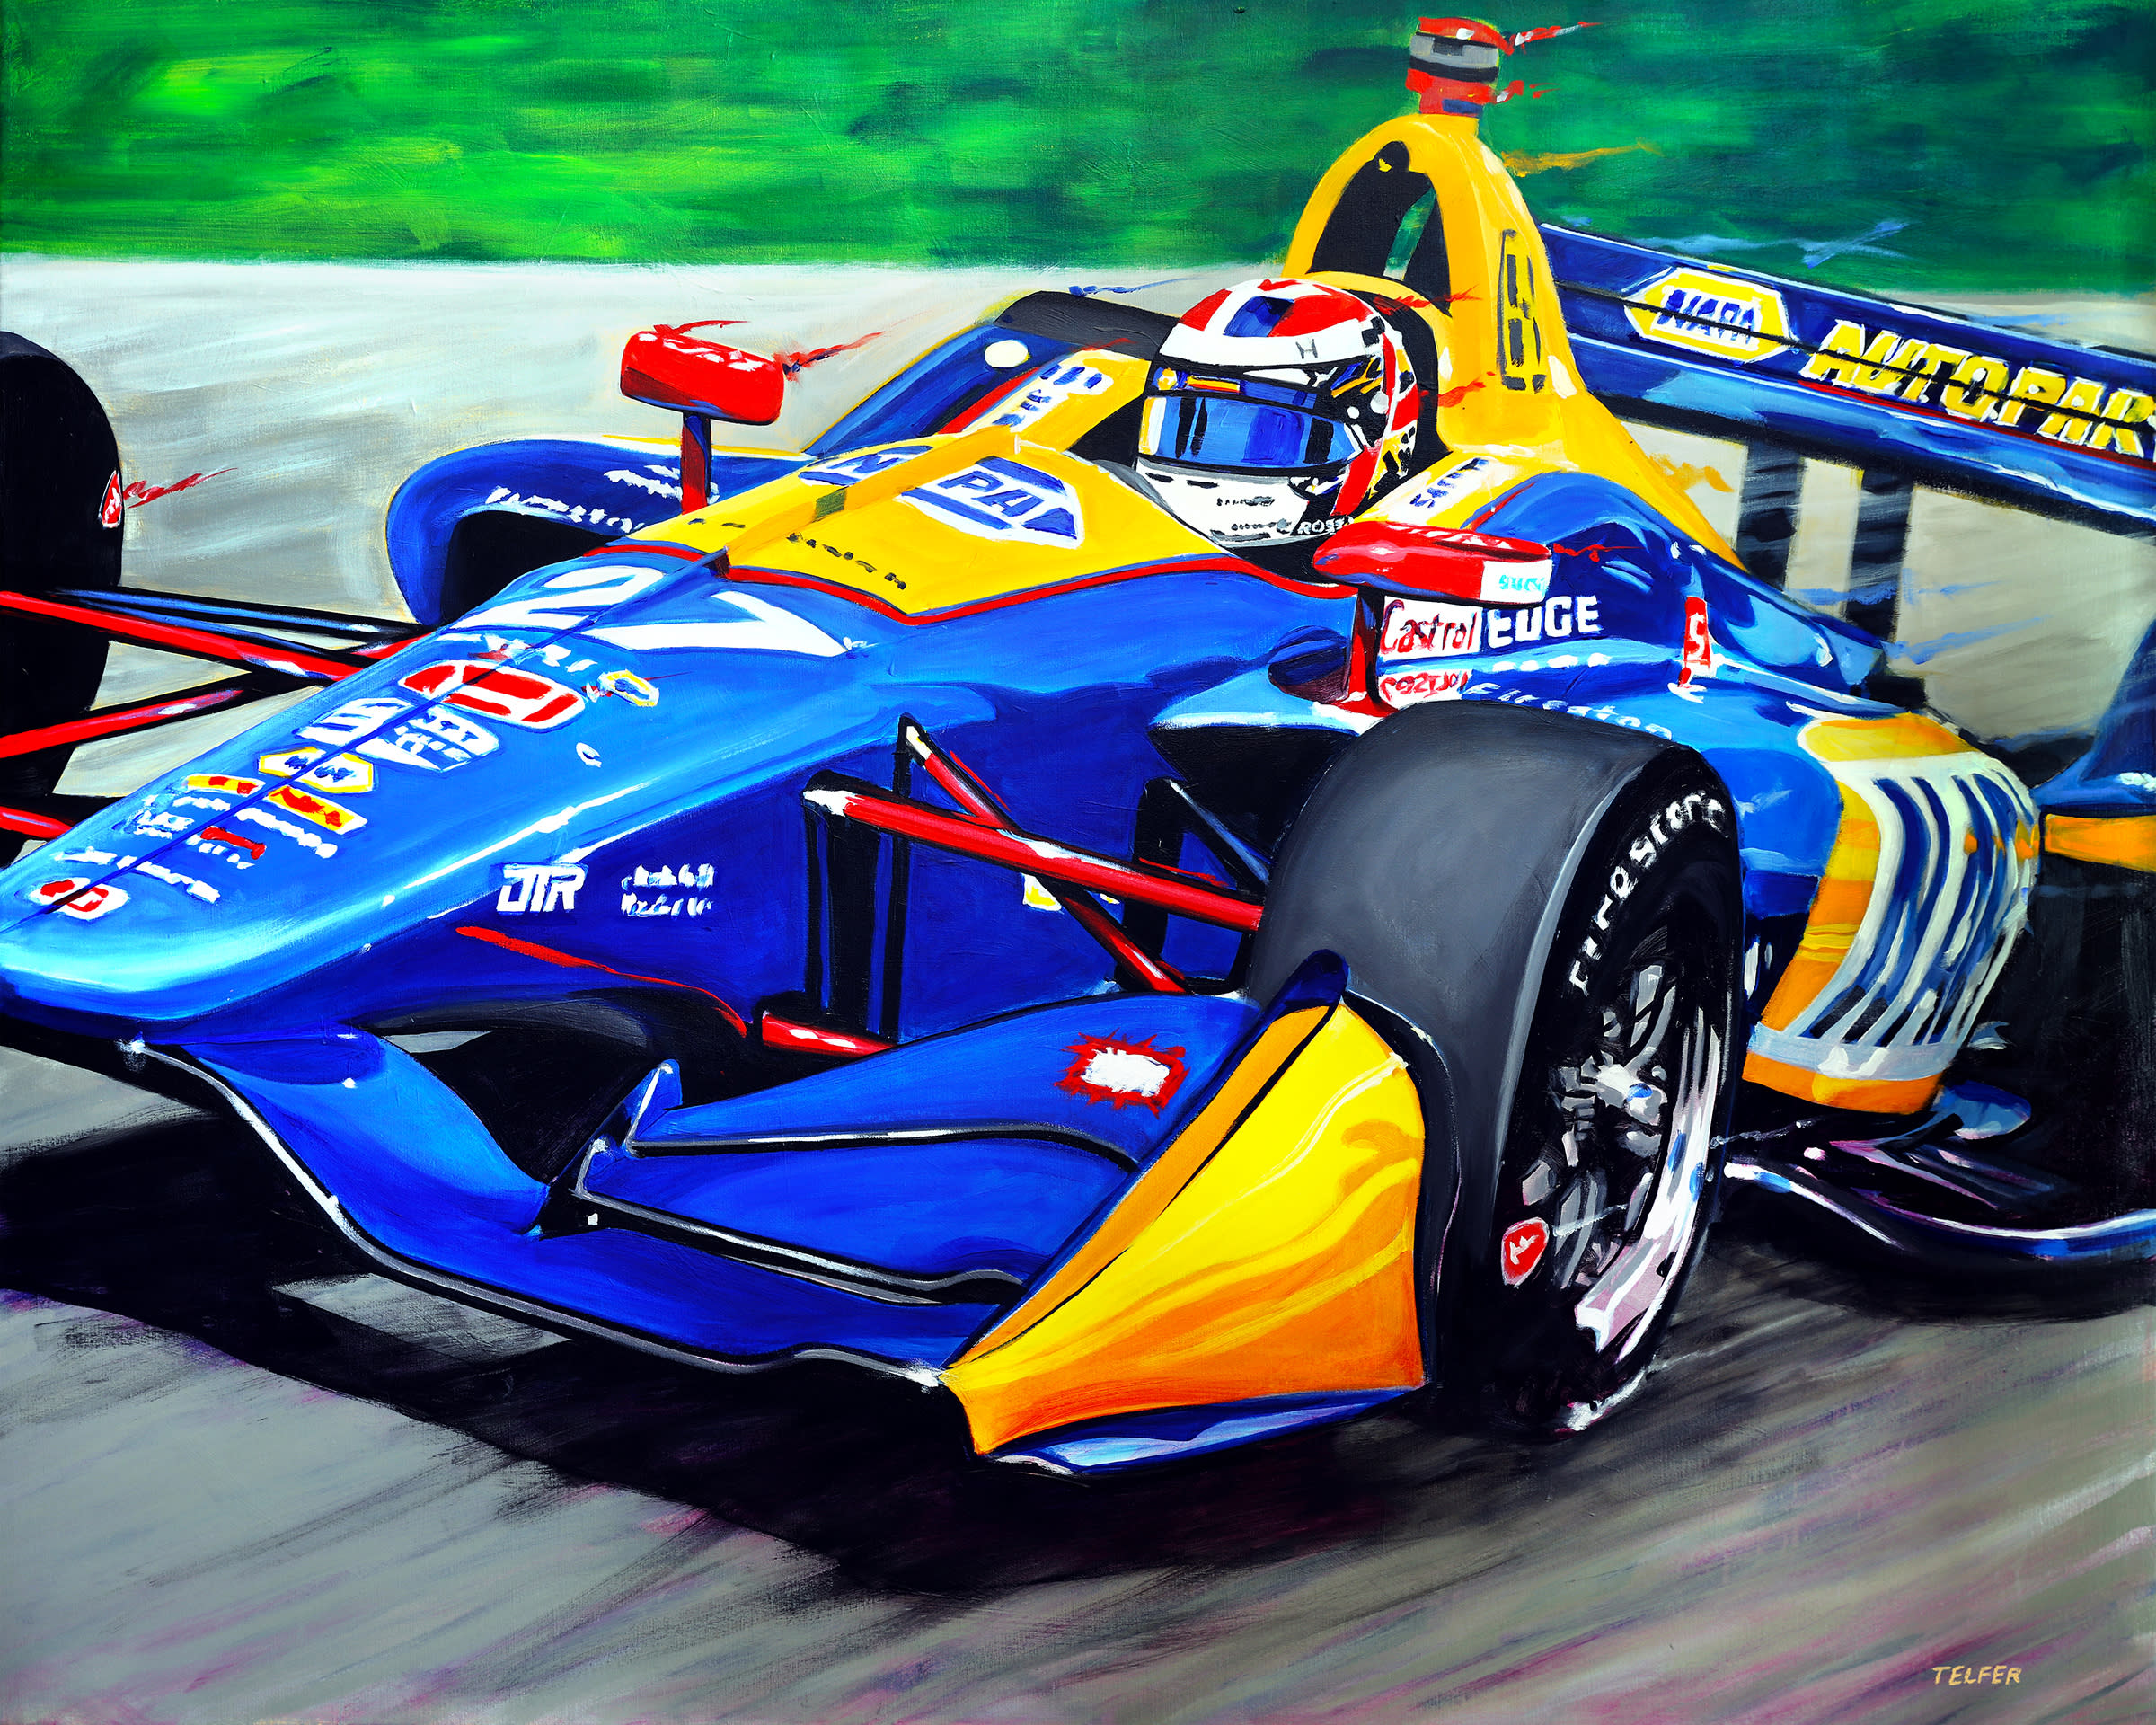 <div class='title'>           Rossi Indy Car  AFS sm         </div>